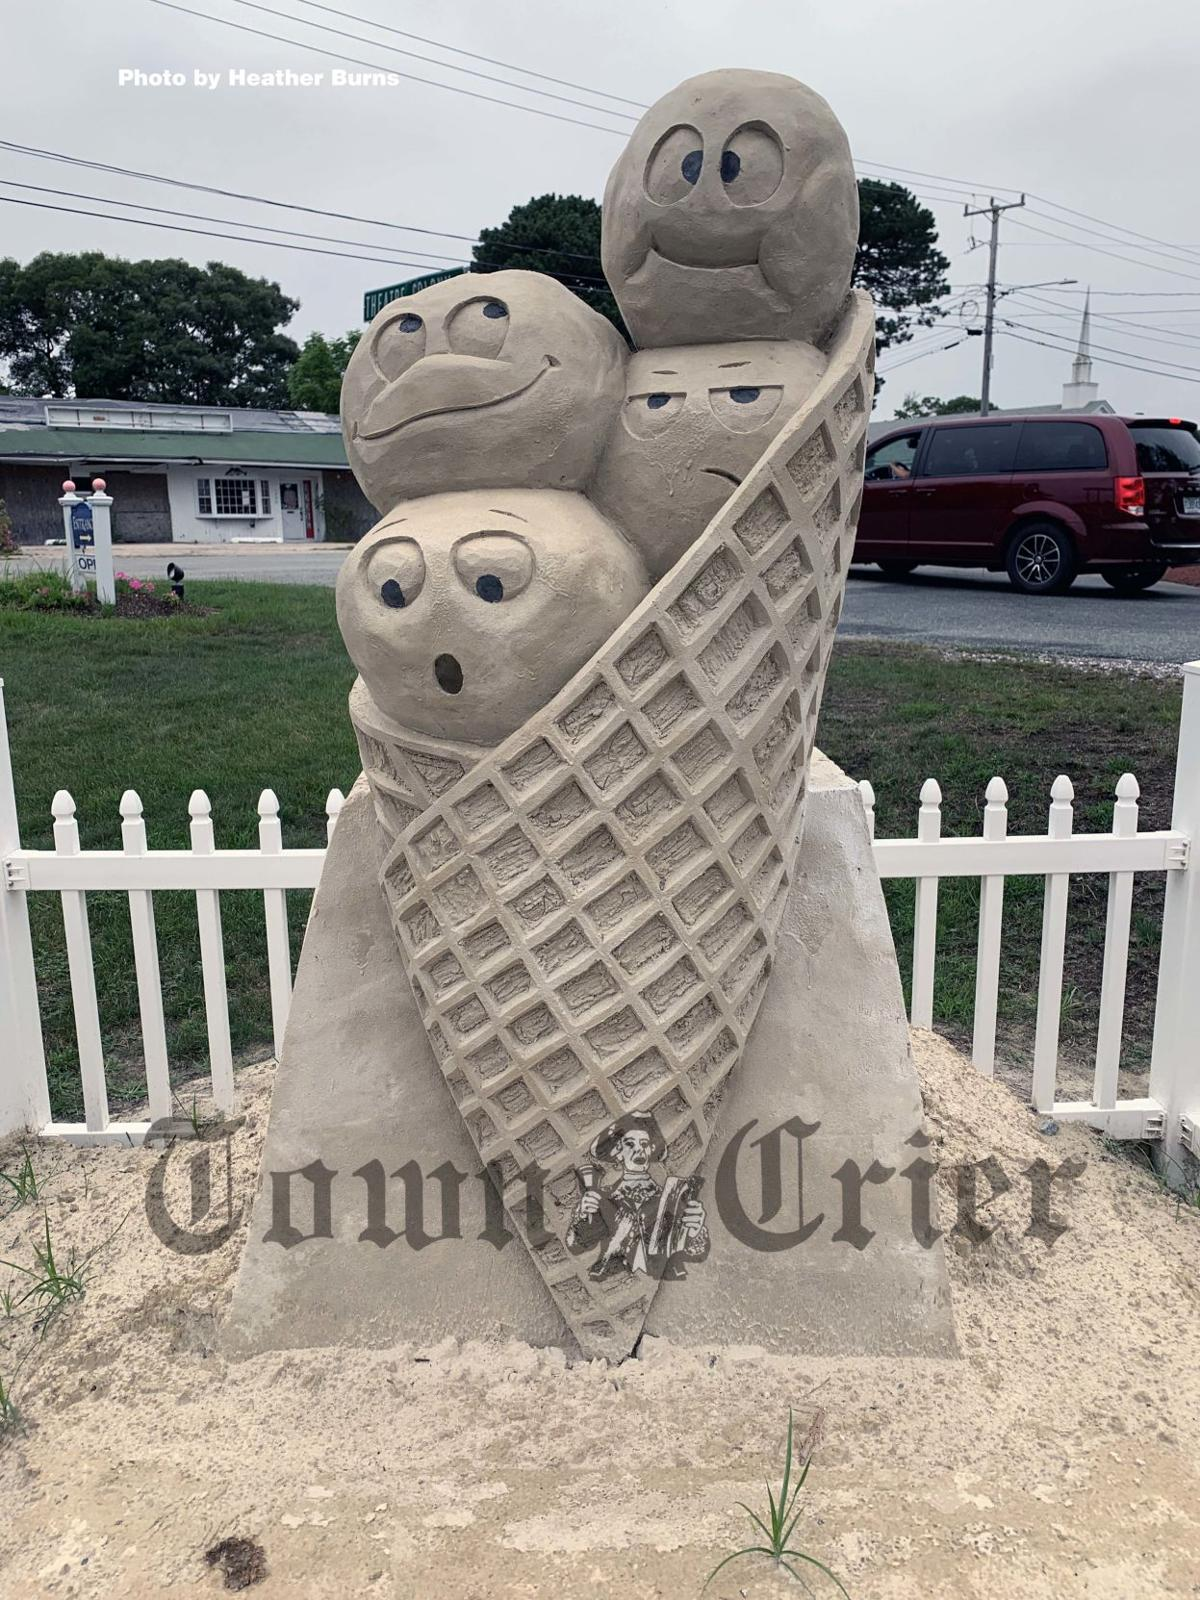 Sand sculpture of a whimsical ice cream cone